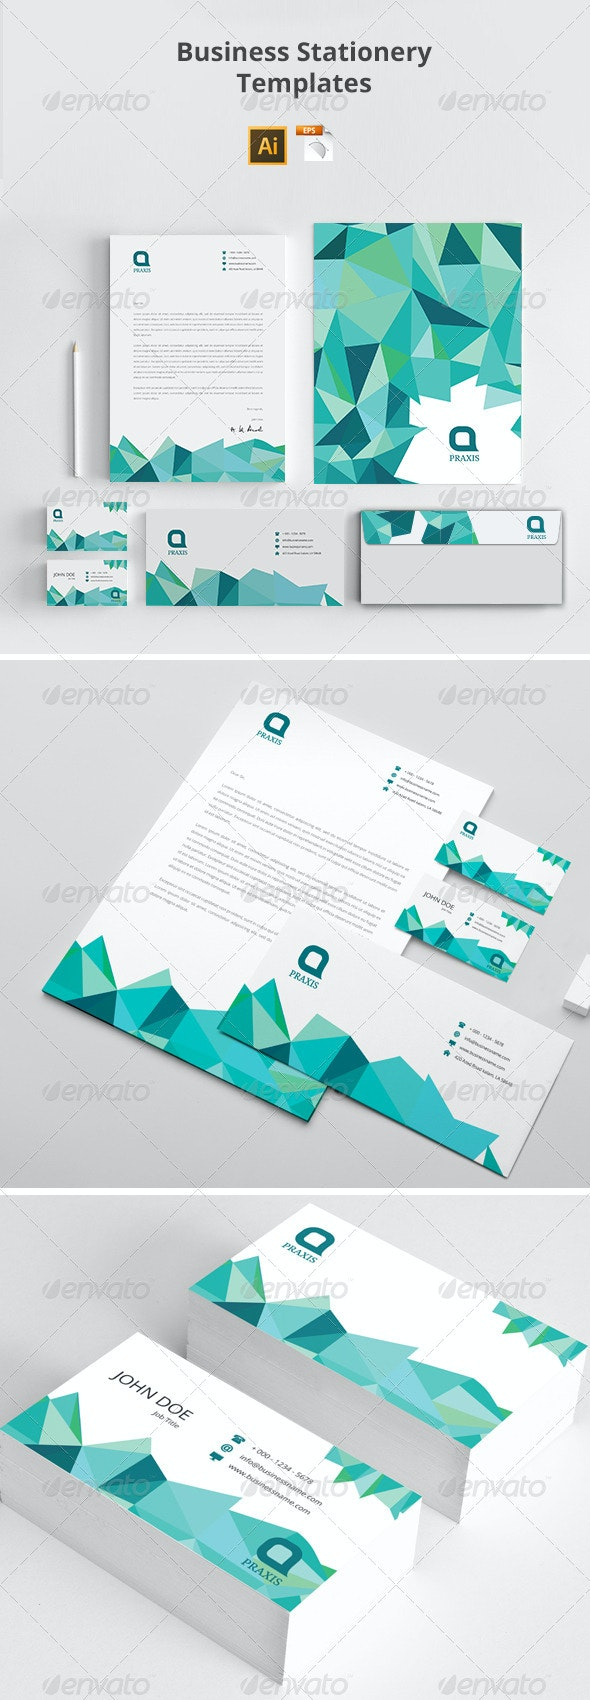 Business Stationery Templates - Stationery Print Templates